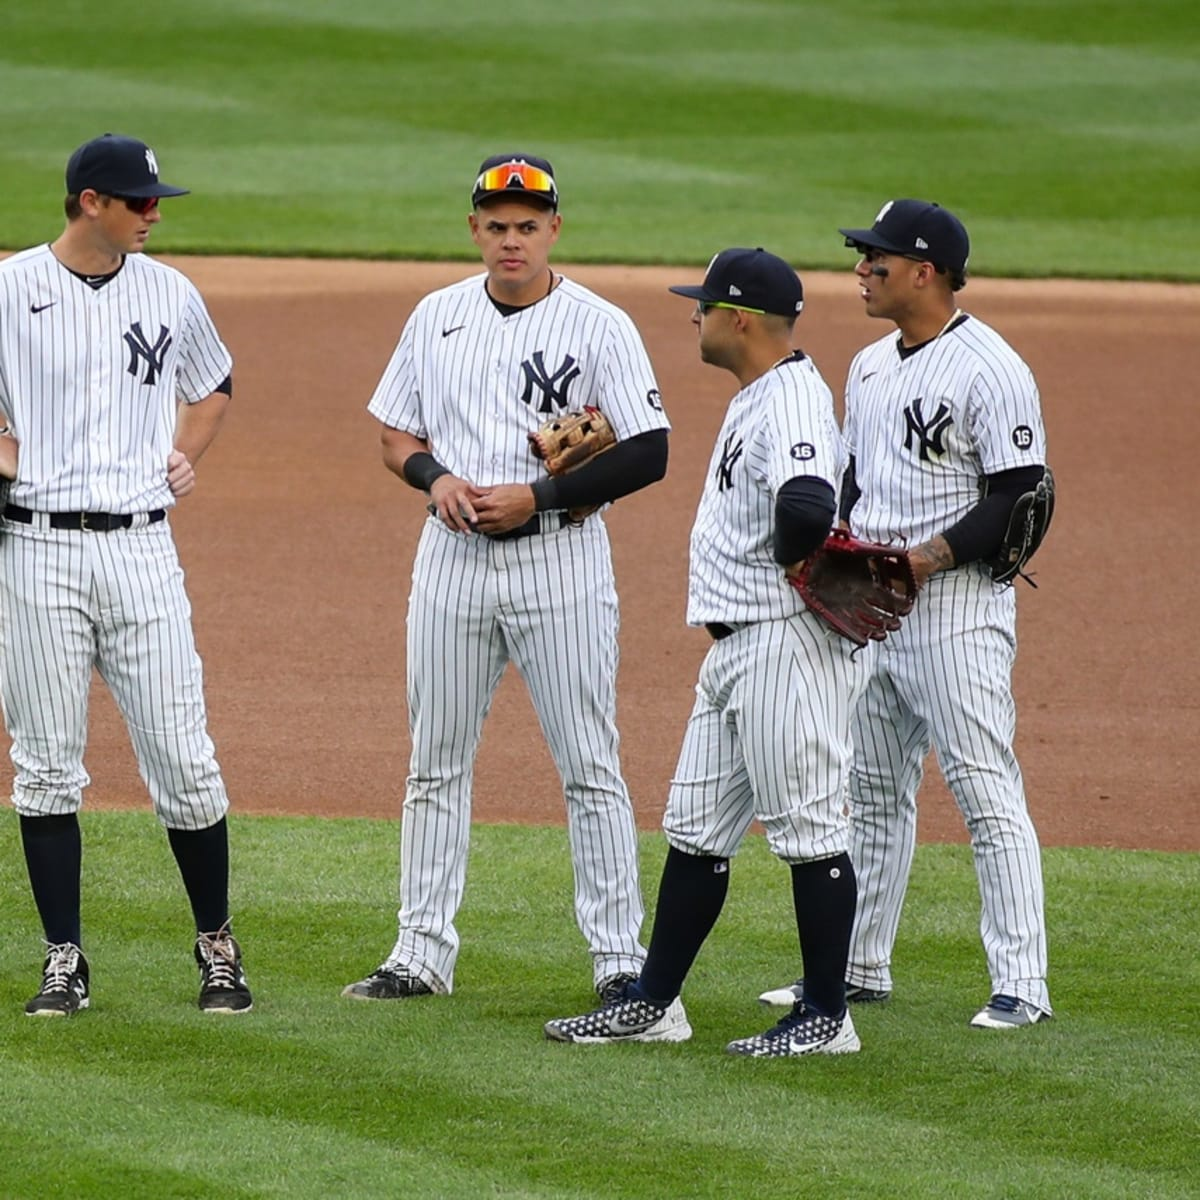 New York Yankees problems go beyond offensive struggles - Sports Illustrated NY Yankees News, Analysis and More